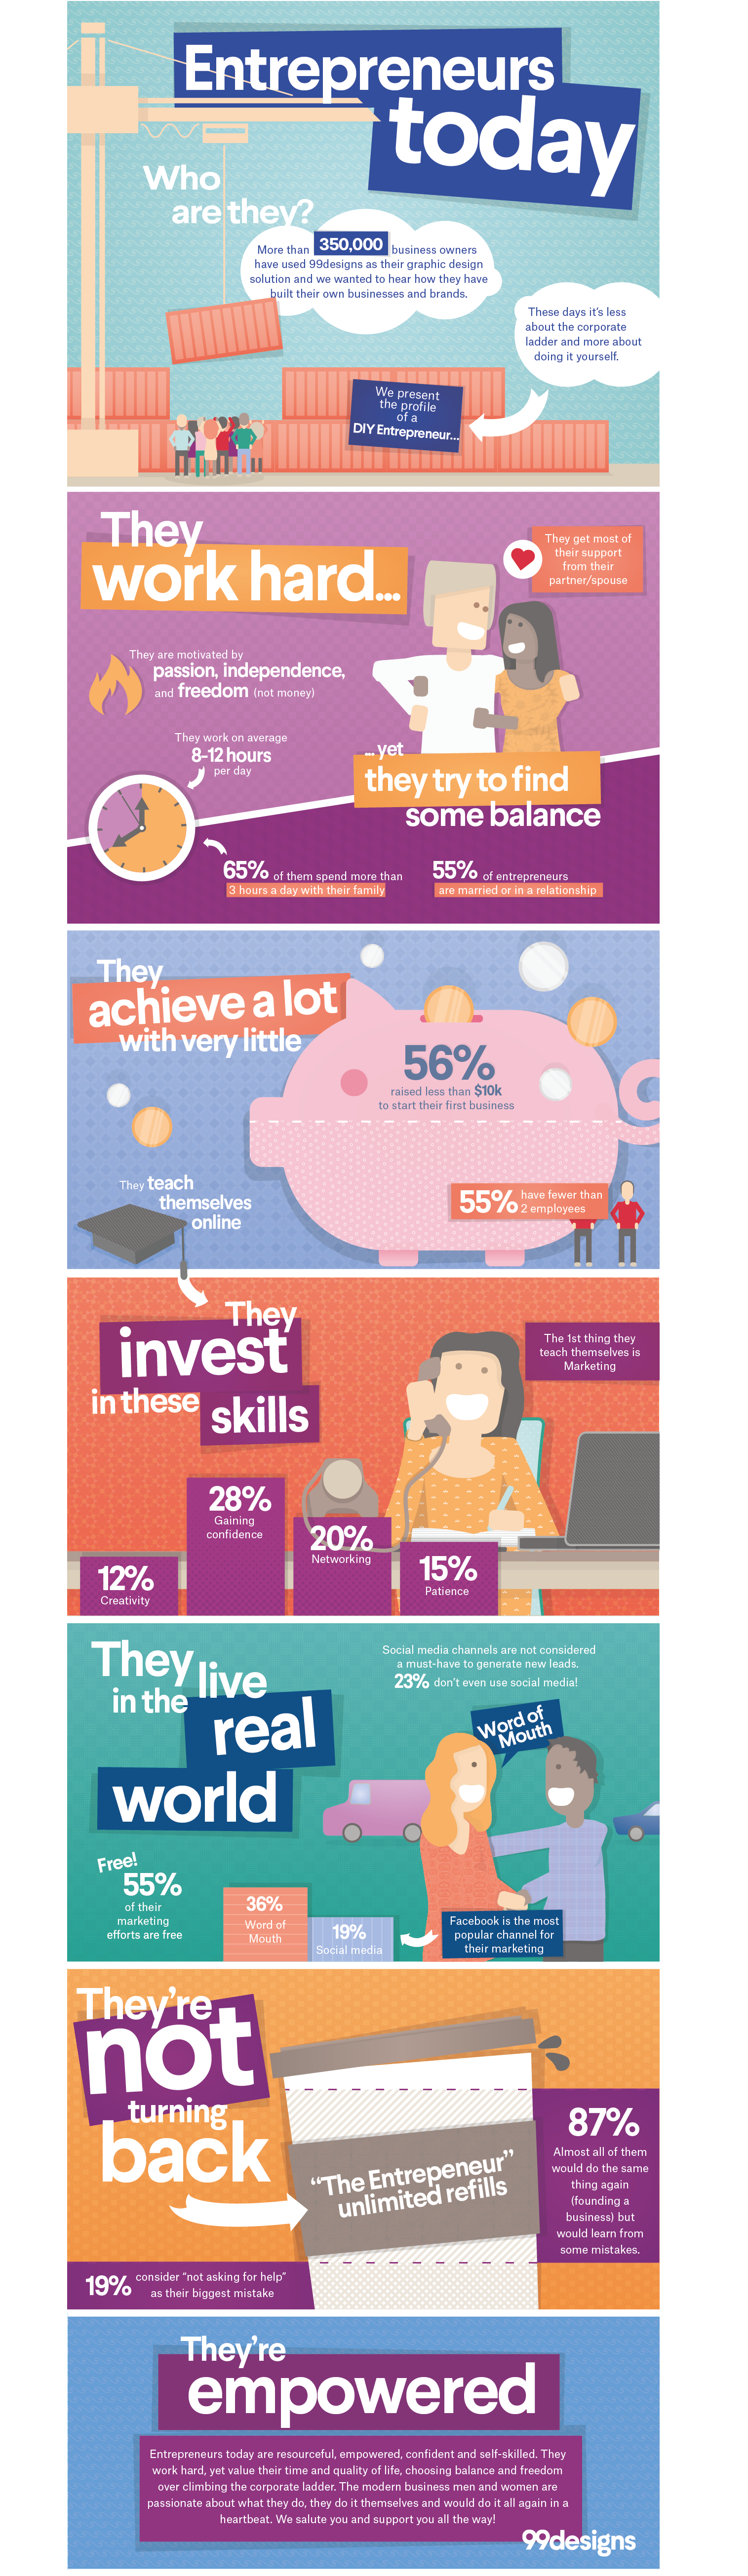 Profile of an entrepreneur infographic